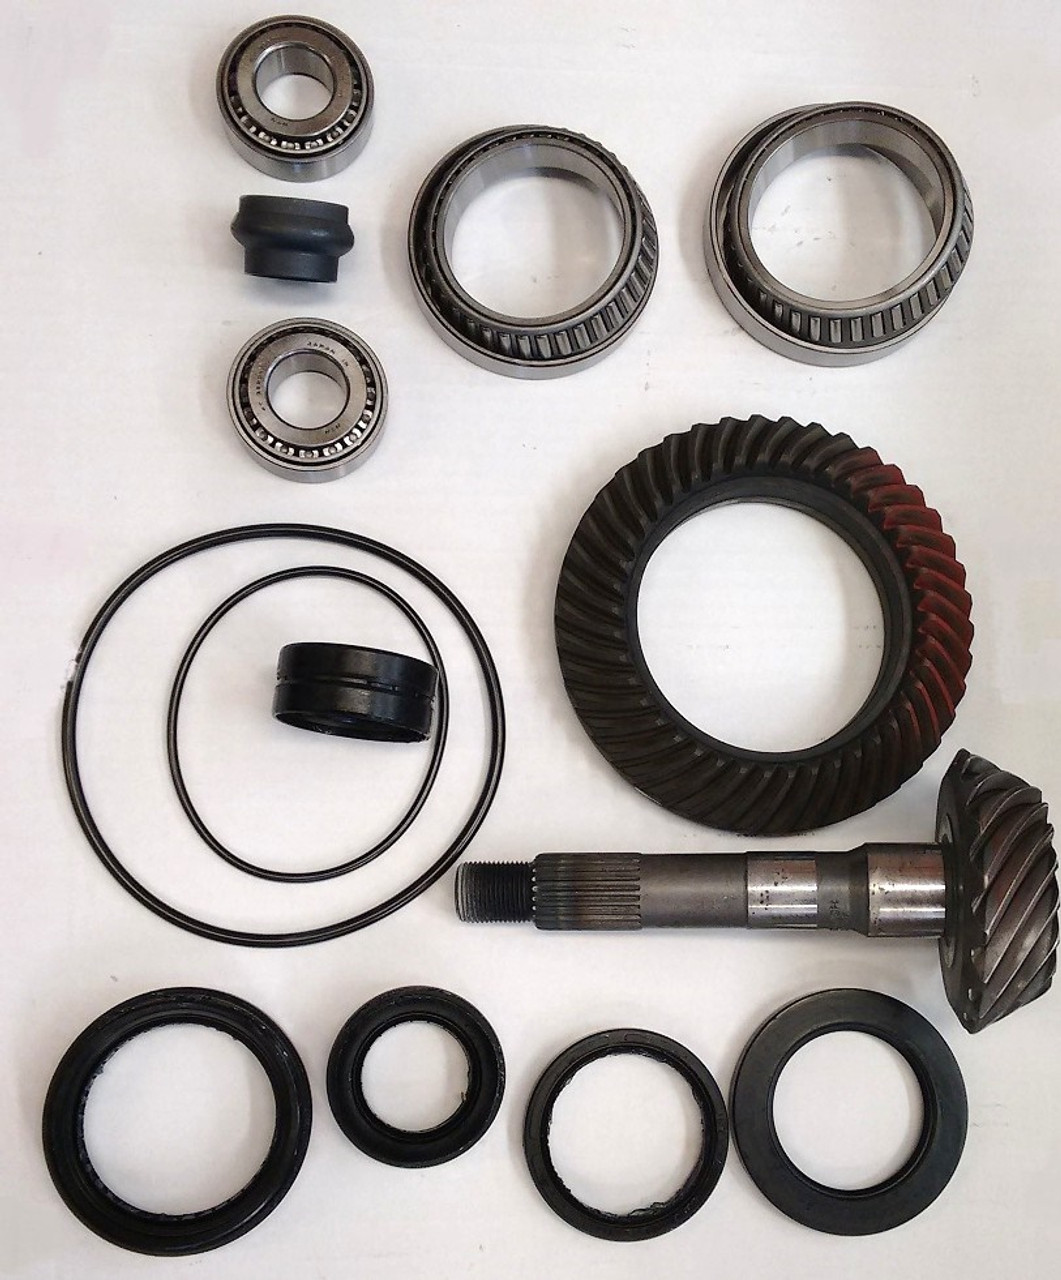 This are all the parts which are replaced in this unit